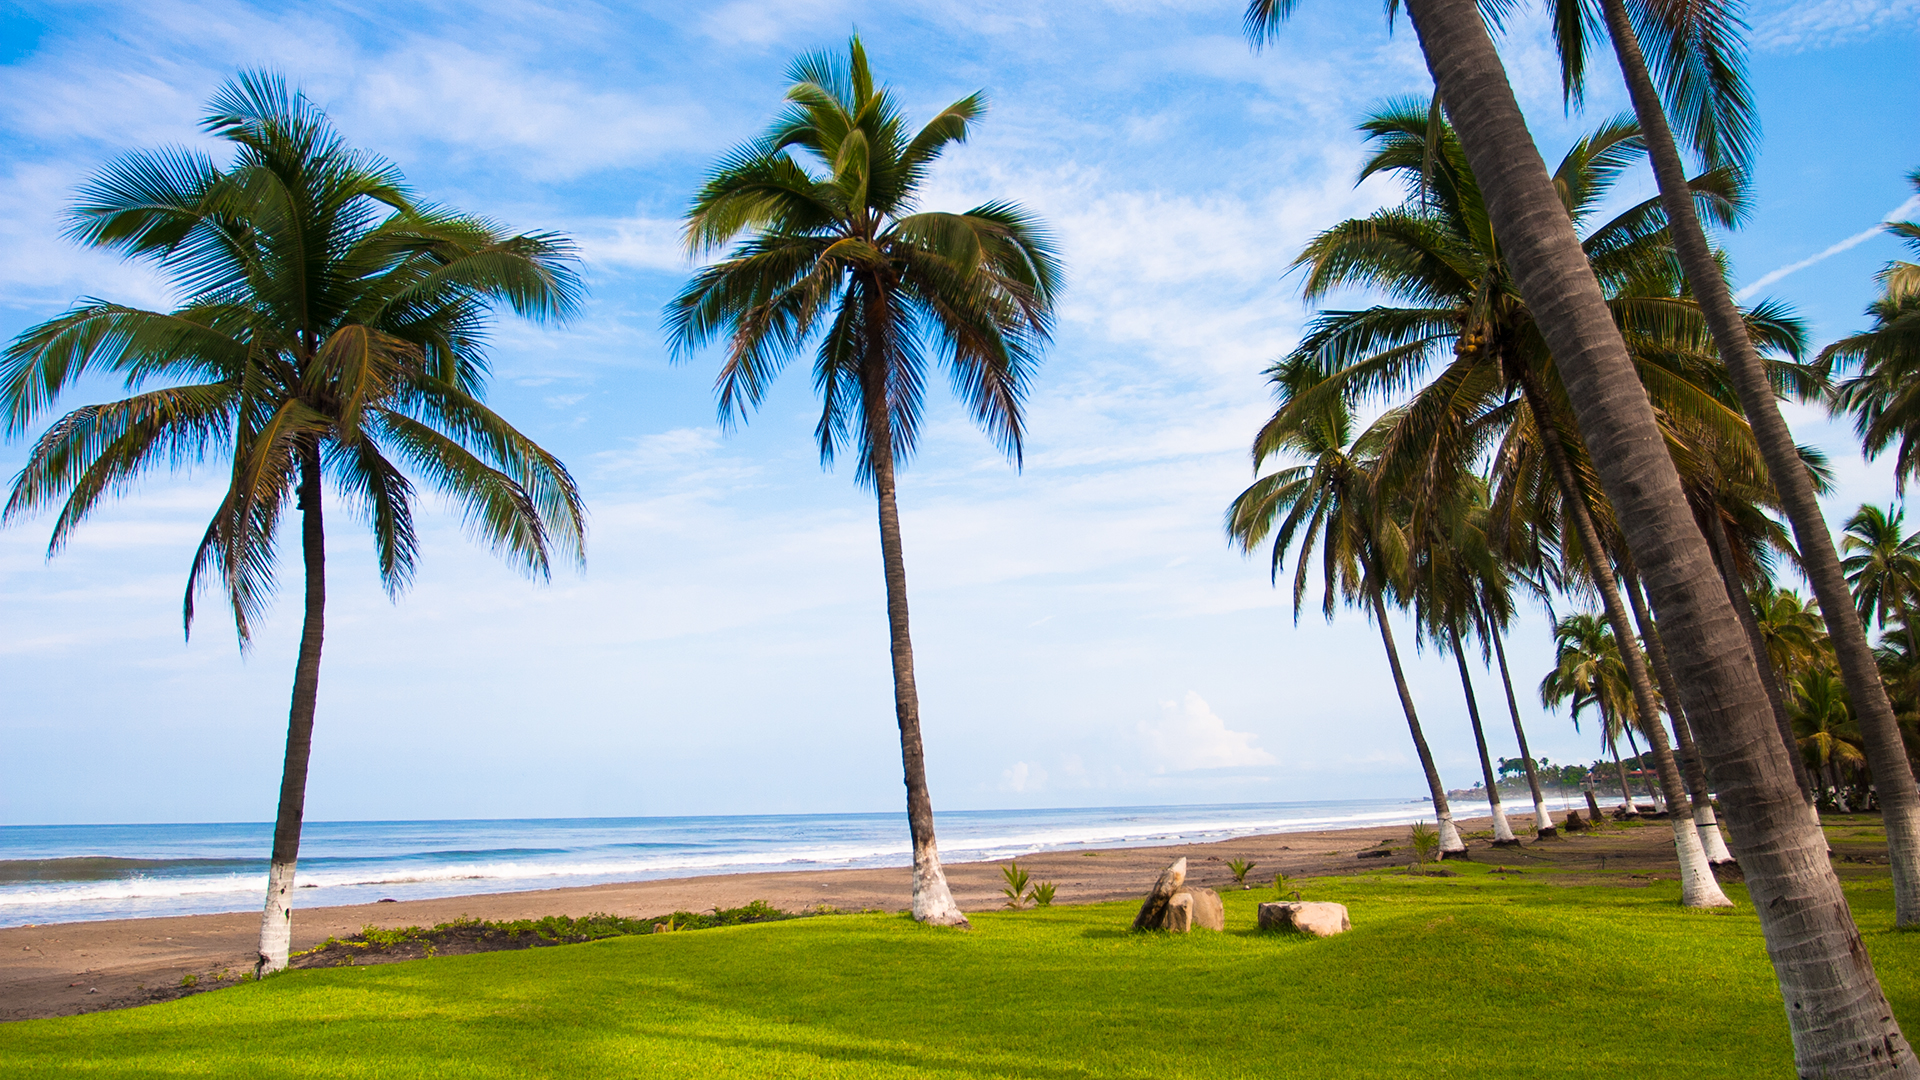 Riviera Nayarit secluded beach